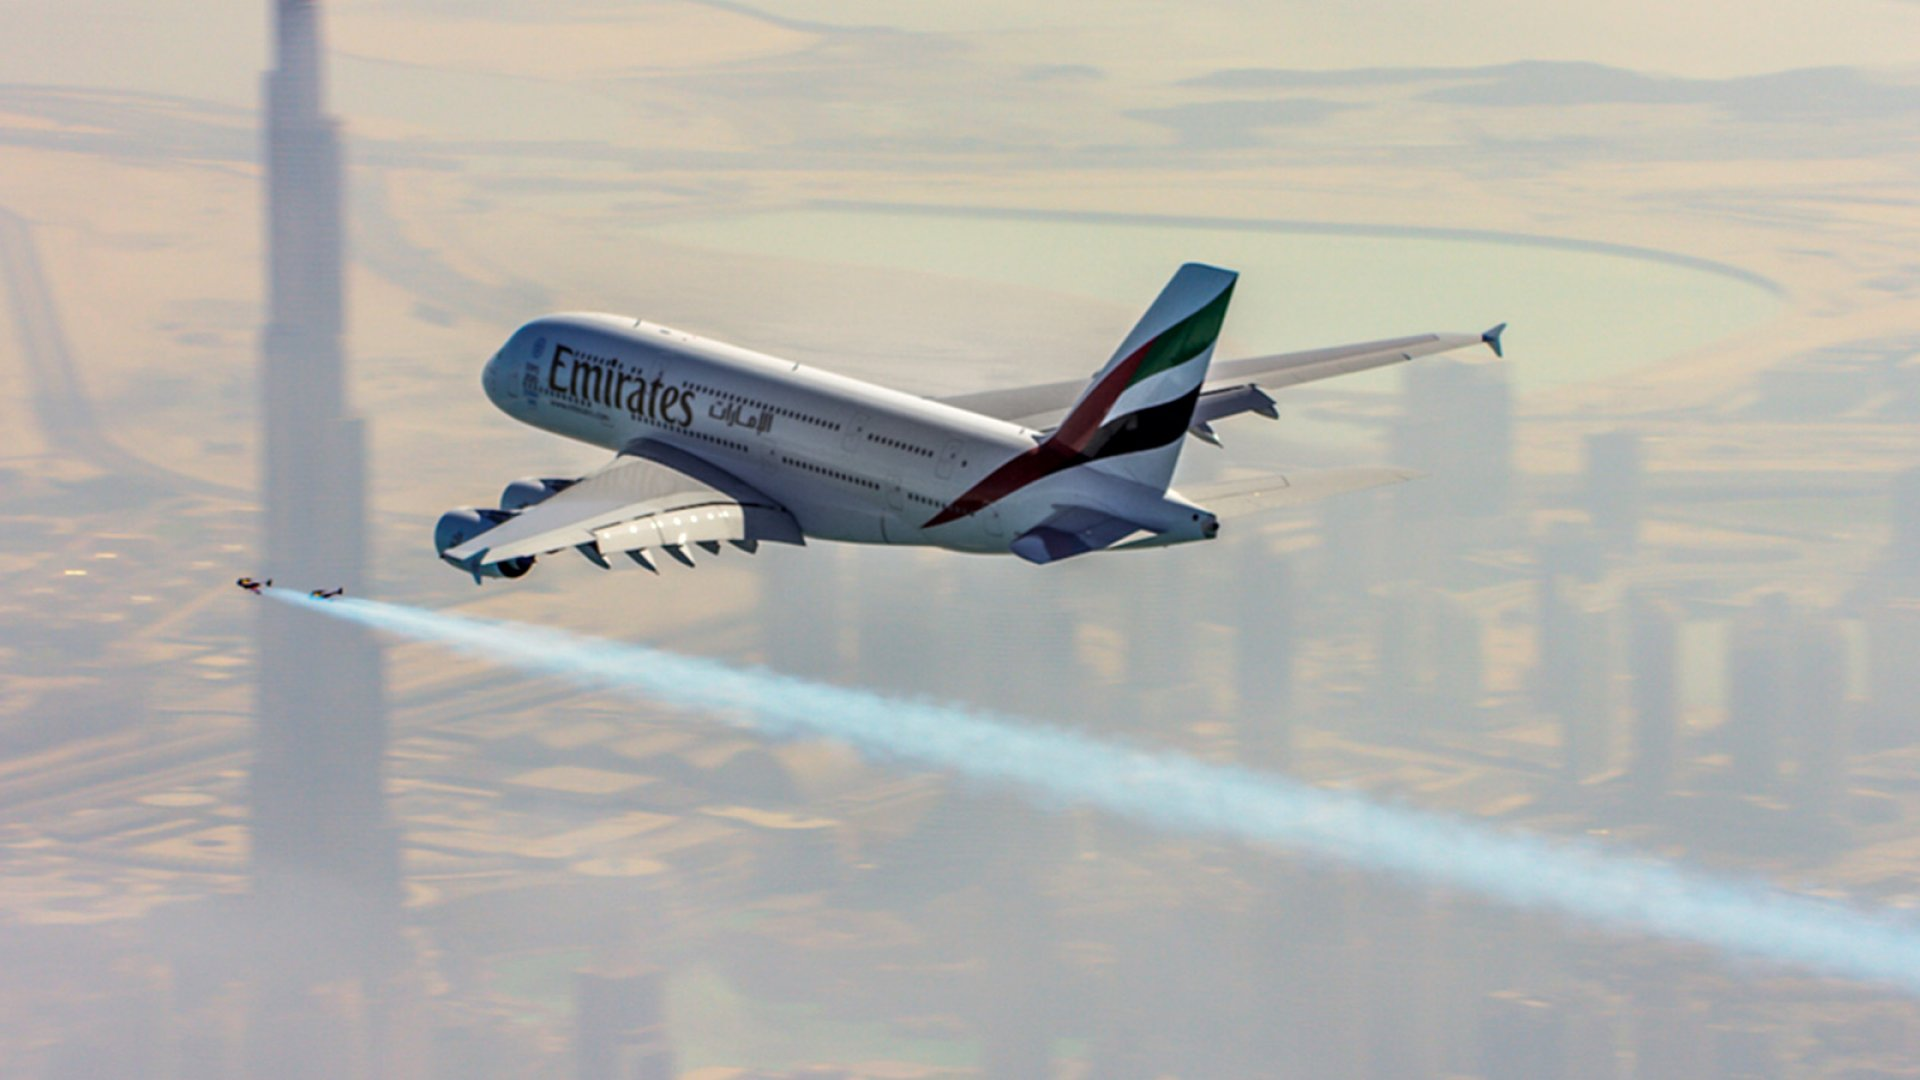 Can I Get a Jetpack Like Those Guys in Dubai?